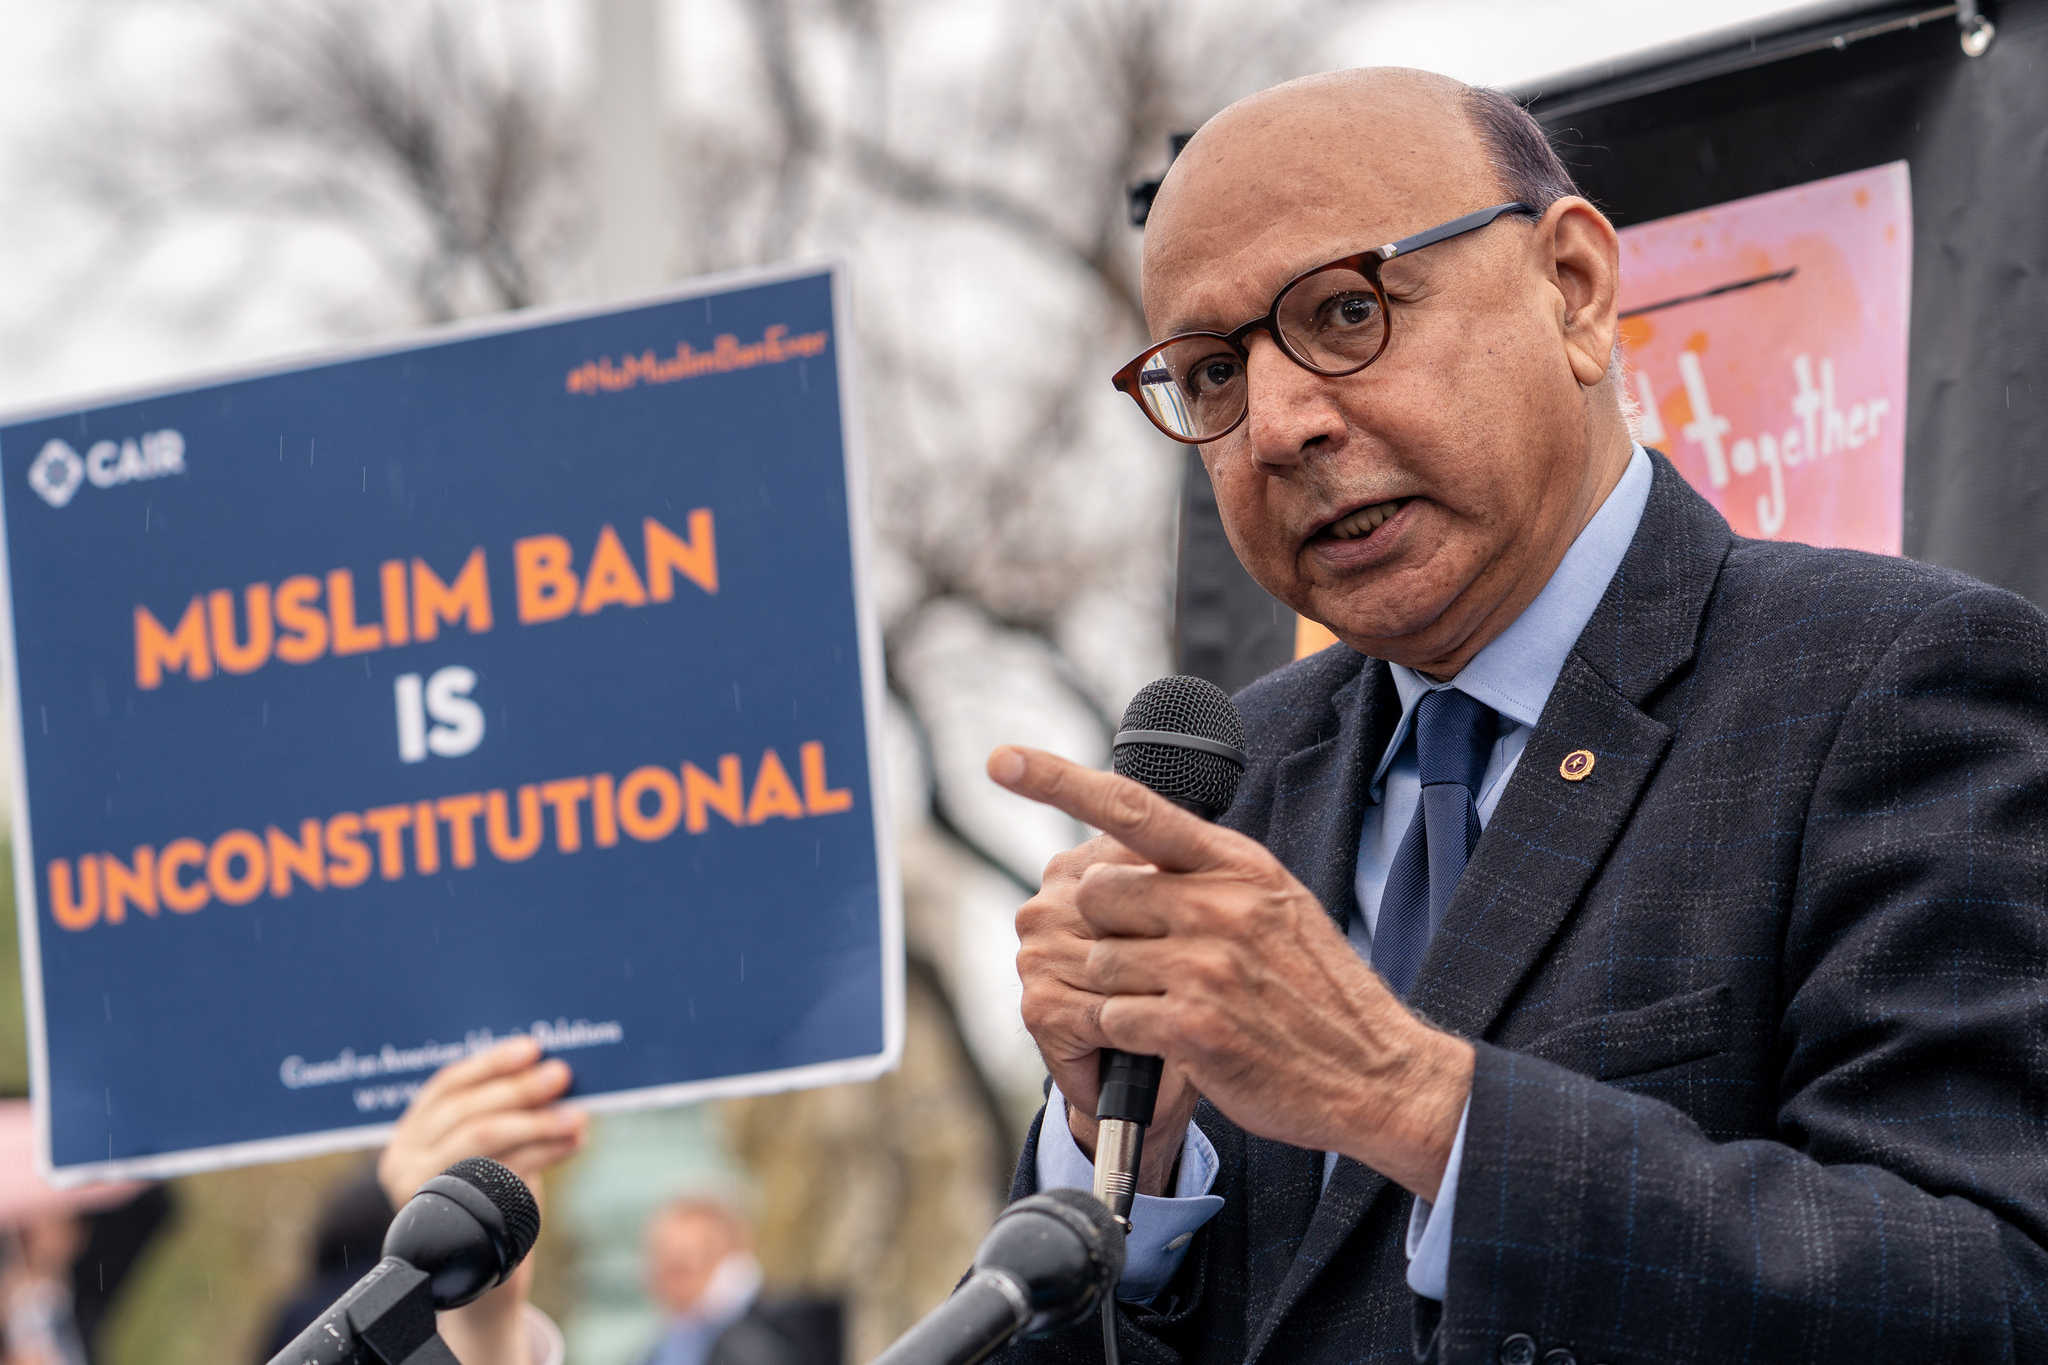 Khizr Khan speaking at the Supreme Court after oral arguments on Trump's latest Muslim Ban